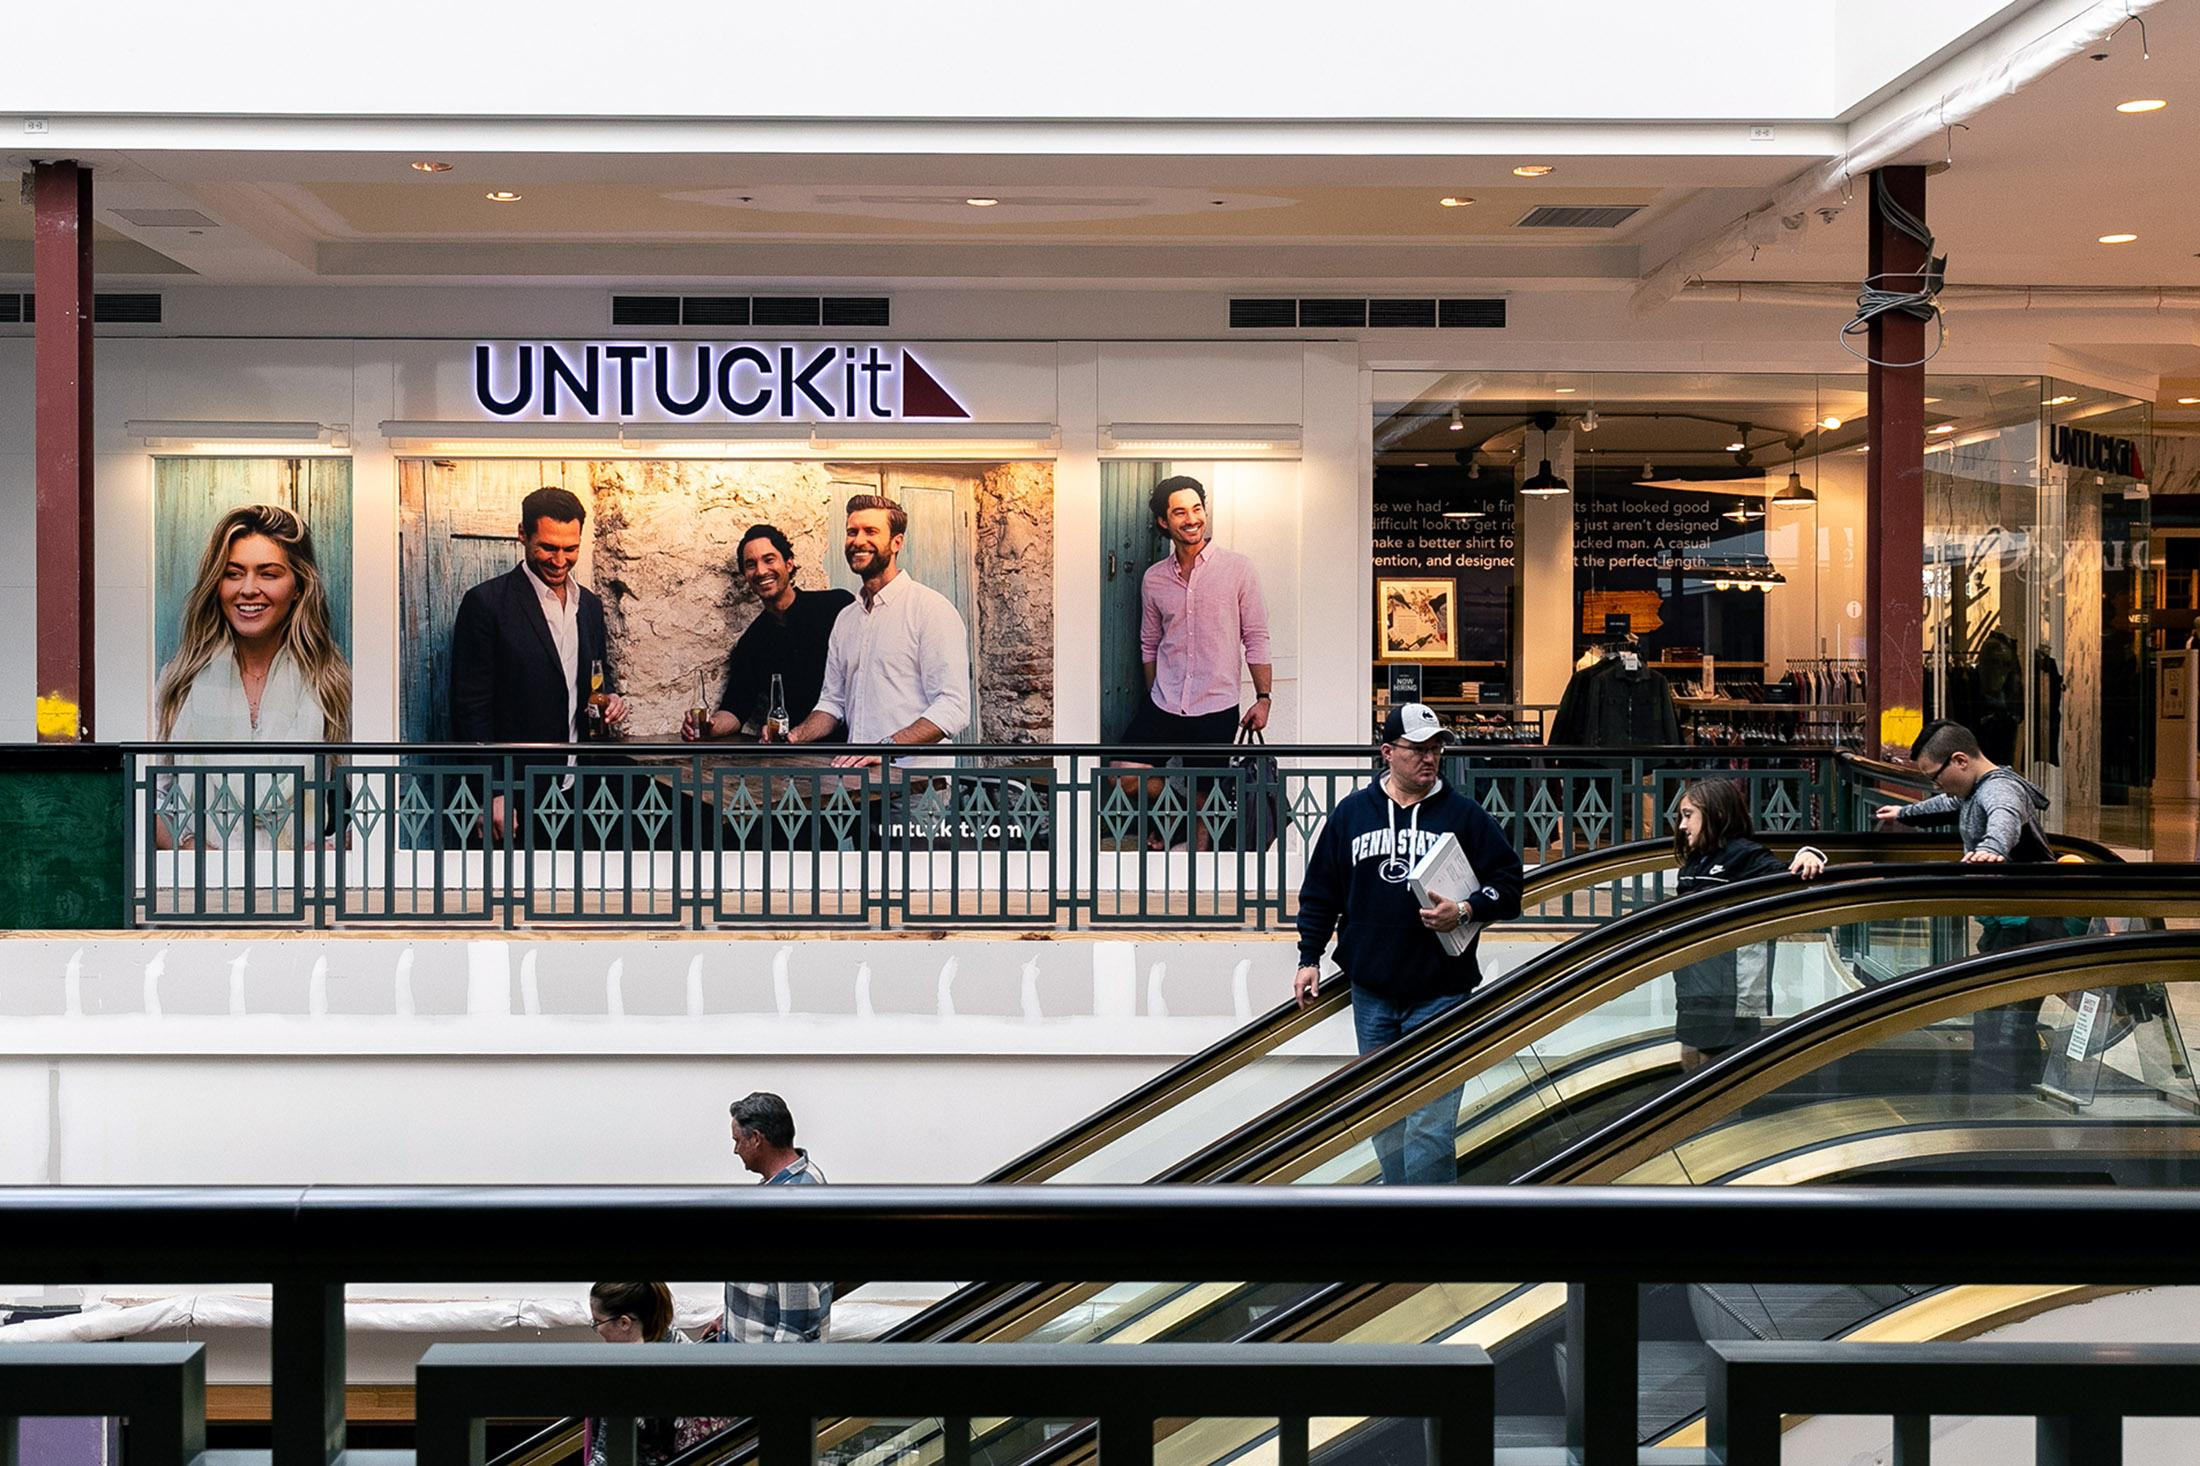 a9f11eb2531d An UntuckIt store at the King of Prussia mall in King of Prussia